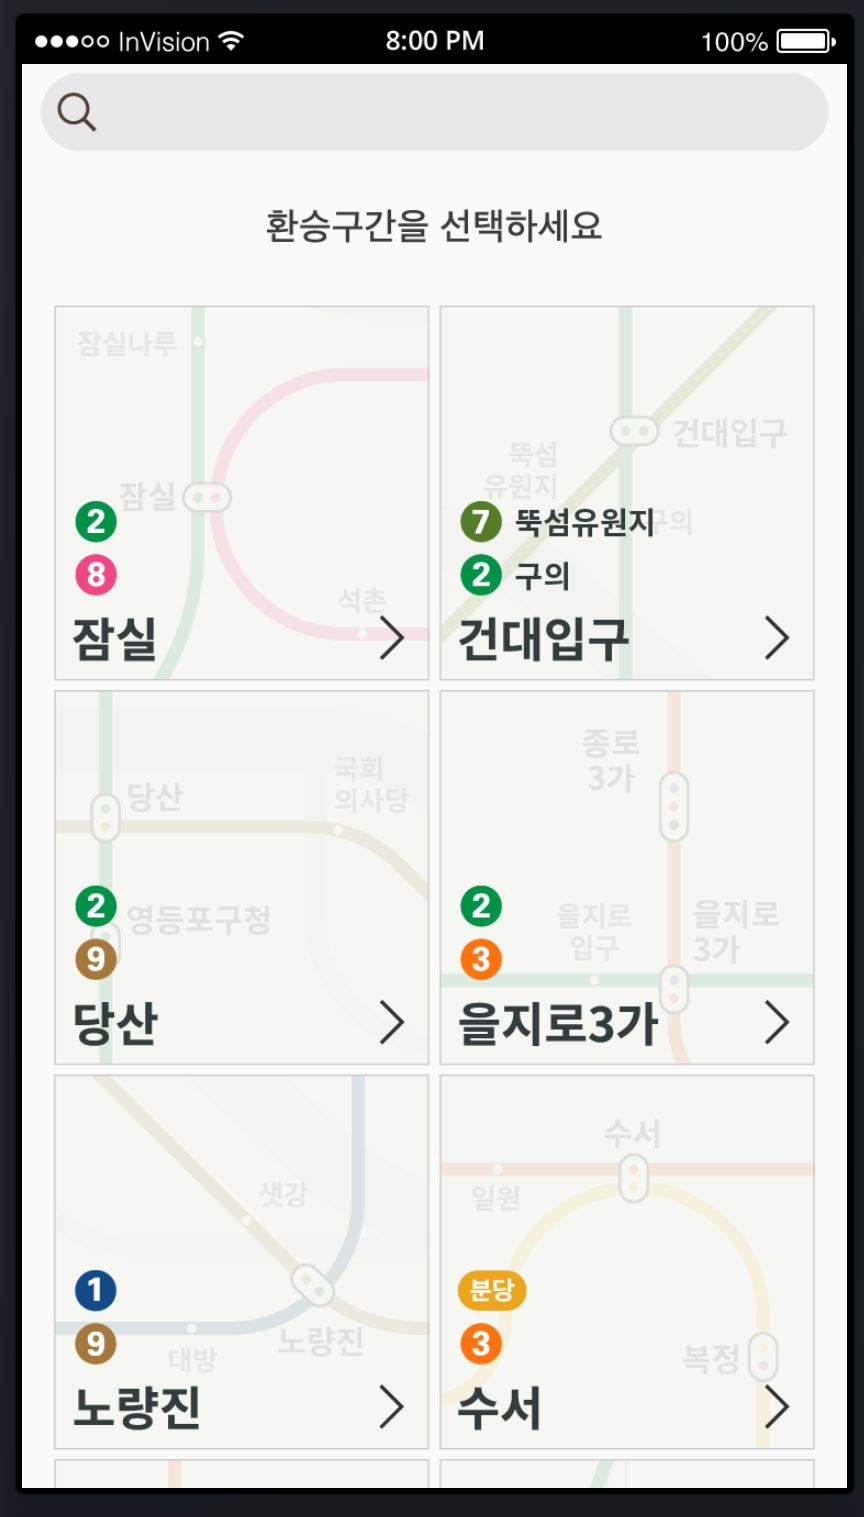 muui homepage-subway-noon design capture 1.JPG